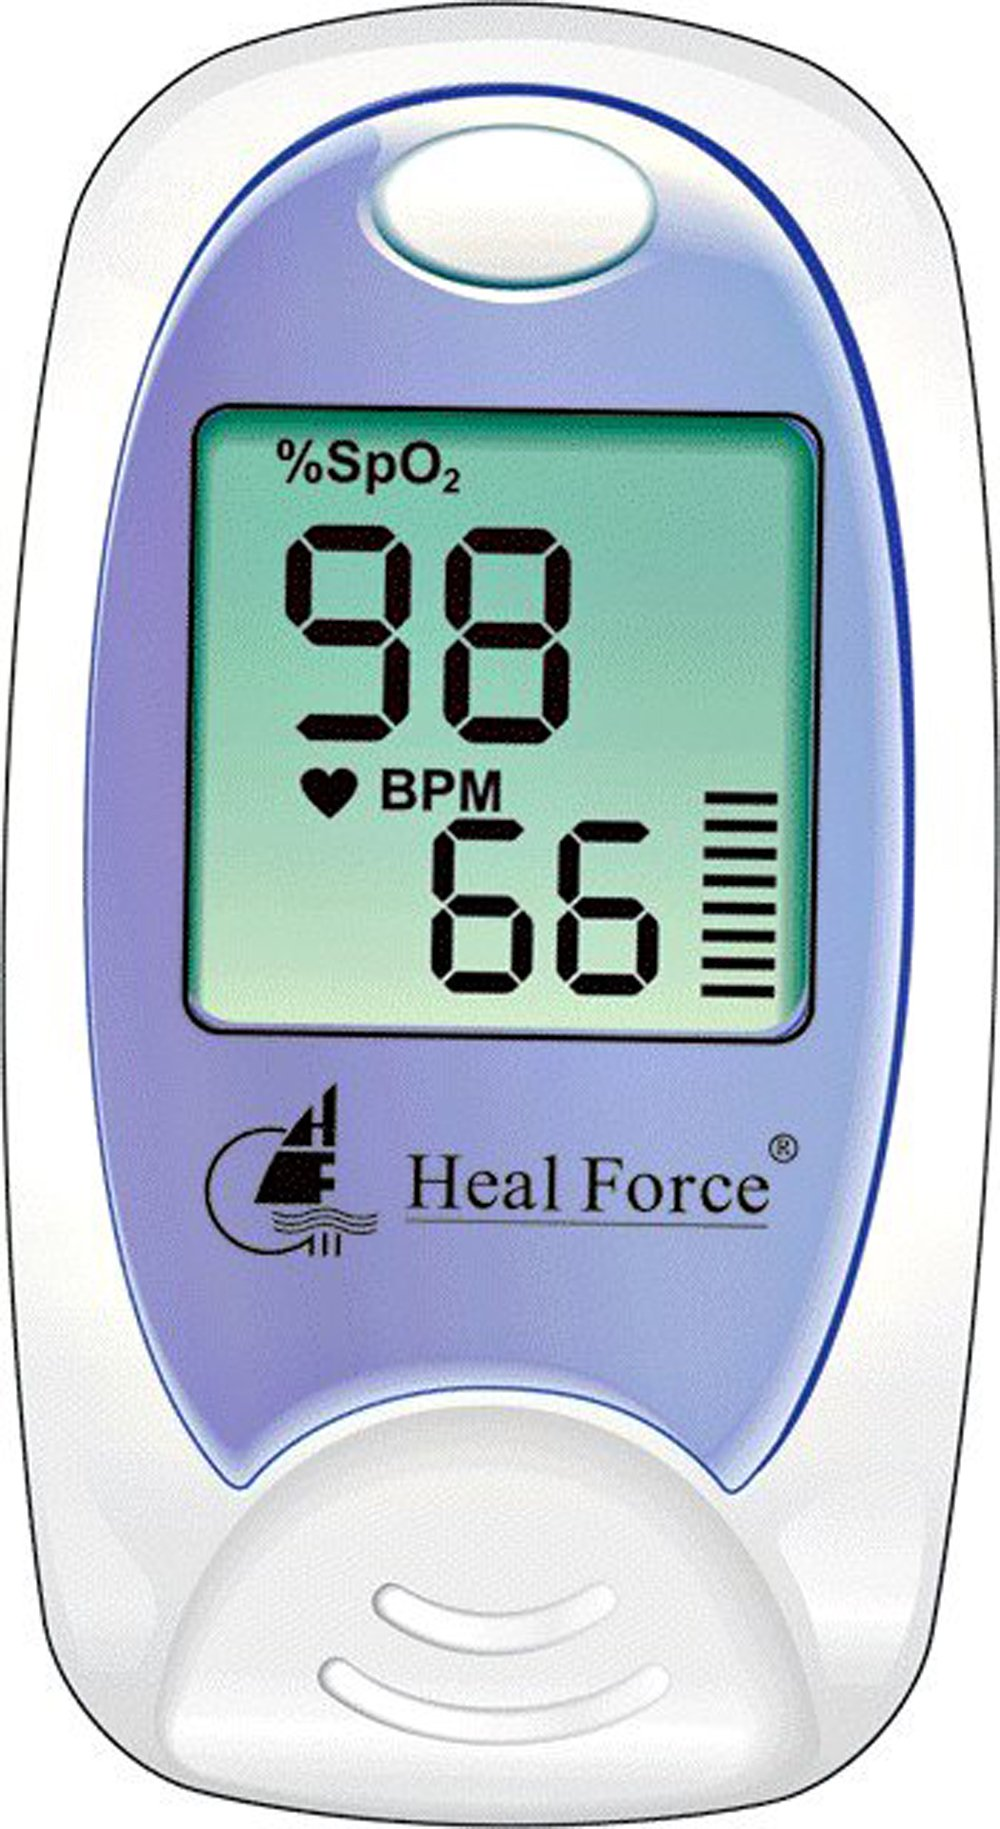 Heal Force Prince 100A Finger Pulse Oximeter Blood Oxygen Sensor SpO2 for Sports and Aviation. Portable and Lightweight with LCD Display, Lanyard and Pouch